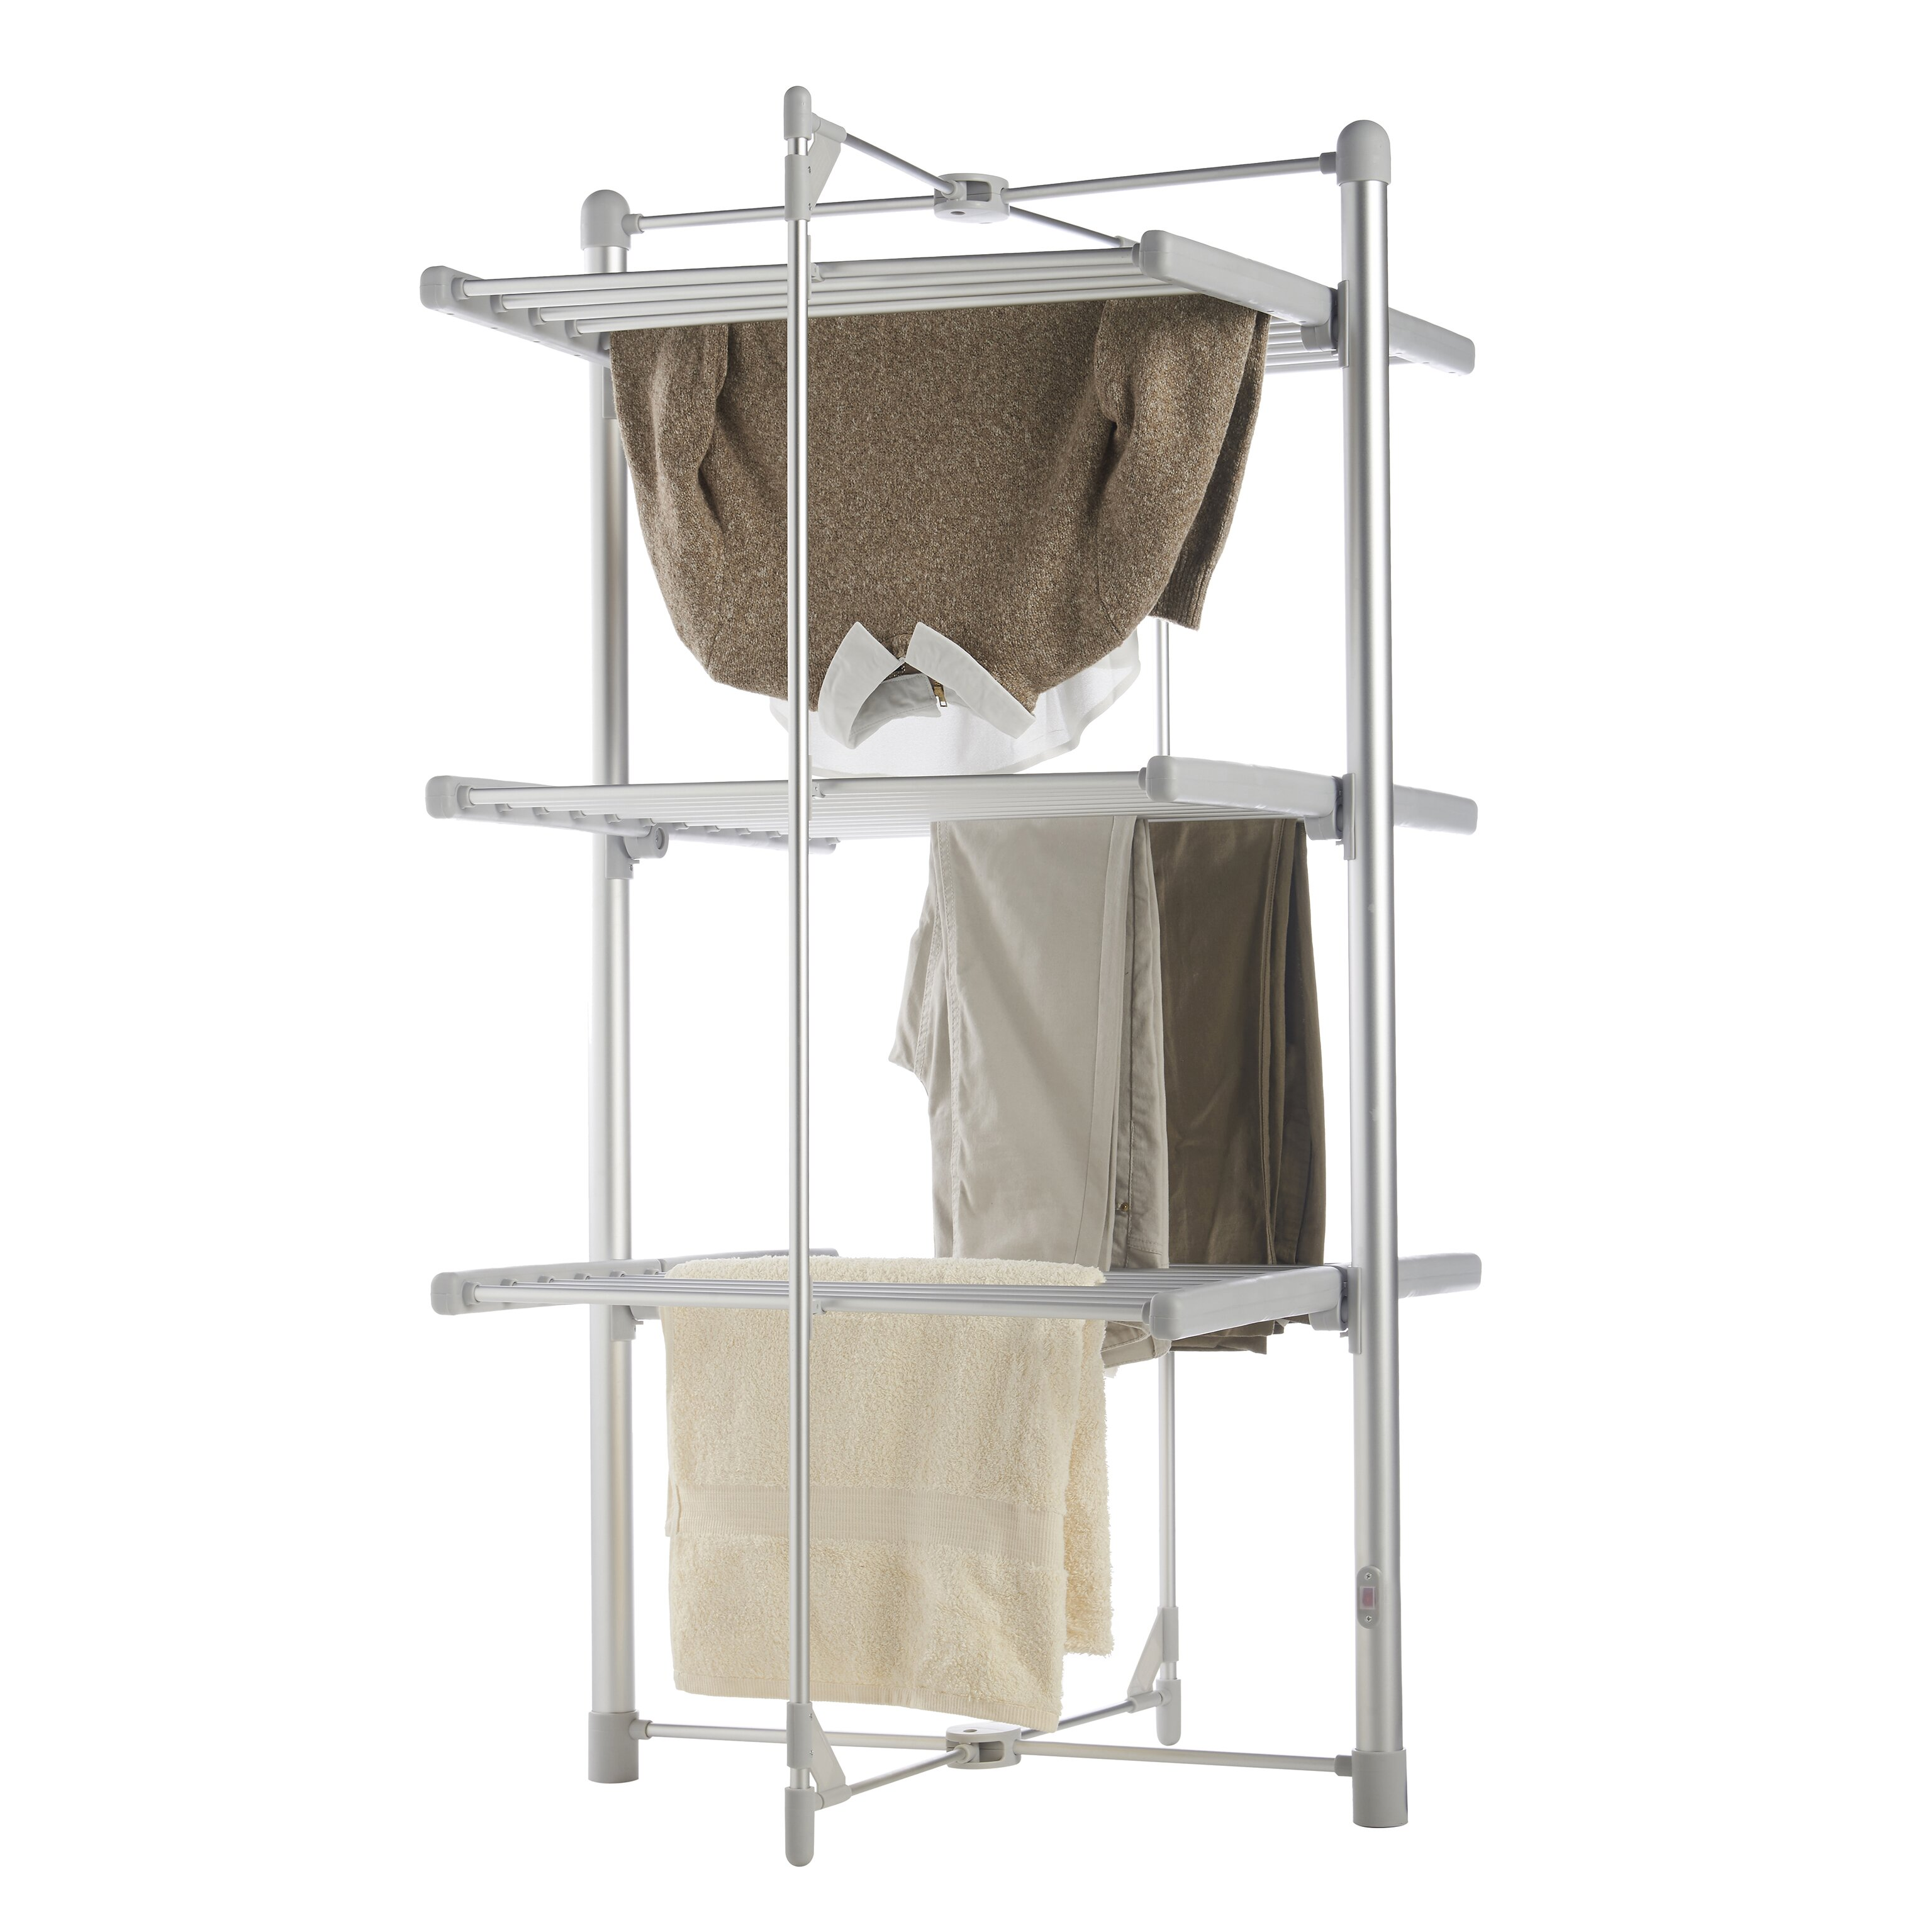 Vonhaus Heated Clothes Drying Rack Reviews Wayfair